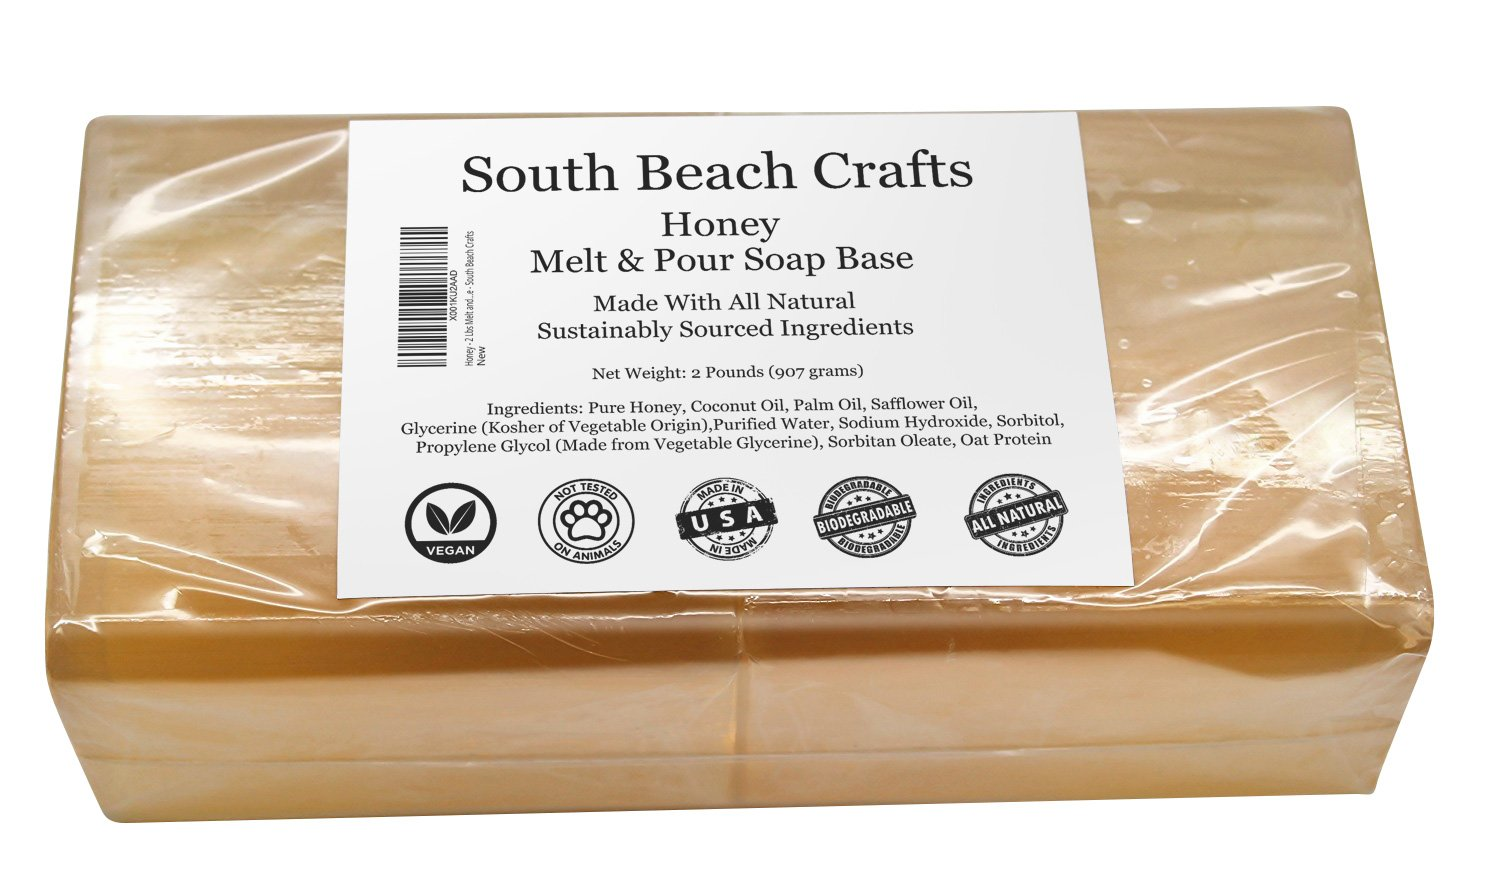 Honey - 2 Lbs Melt and Pour Soap Base - South Beach Crafts